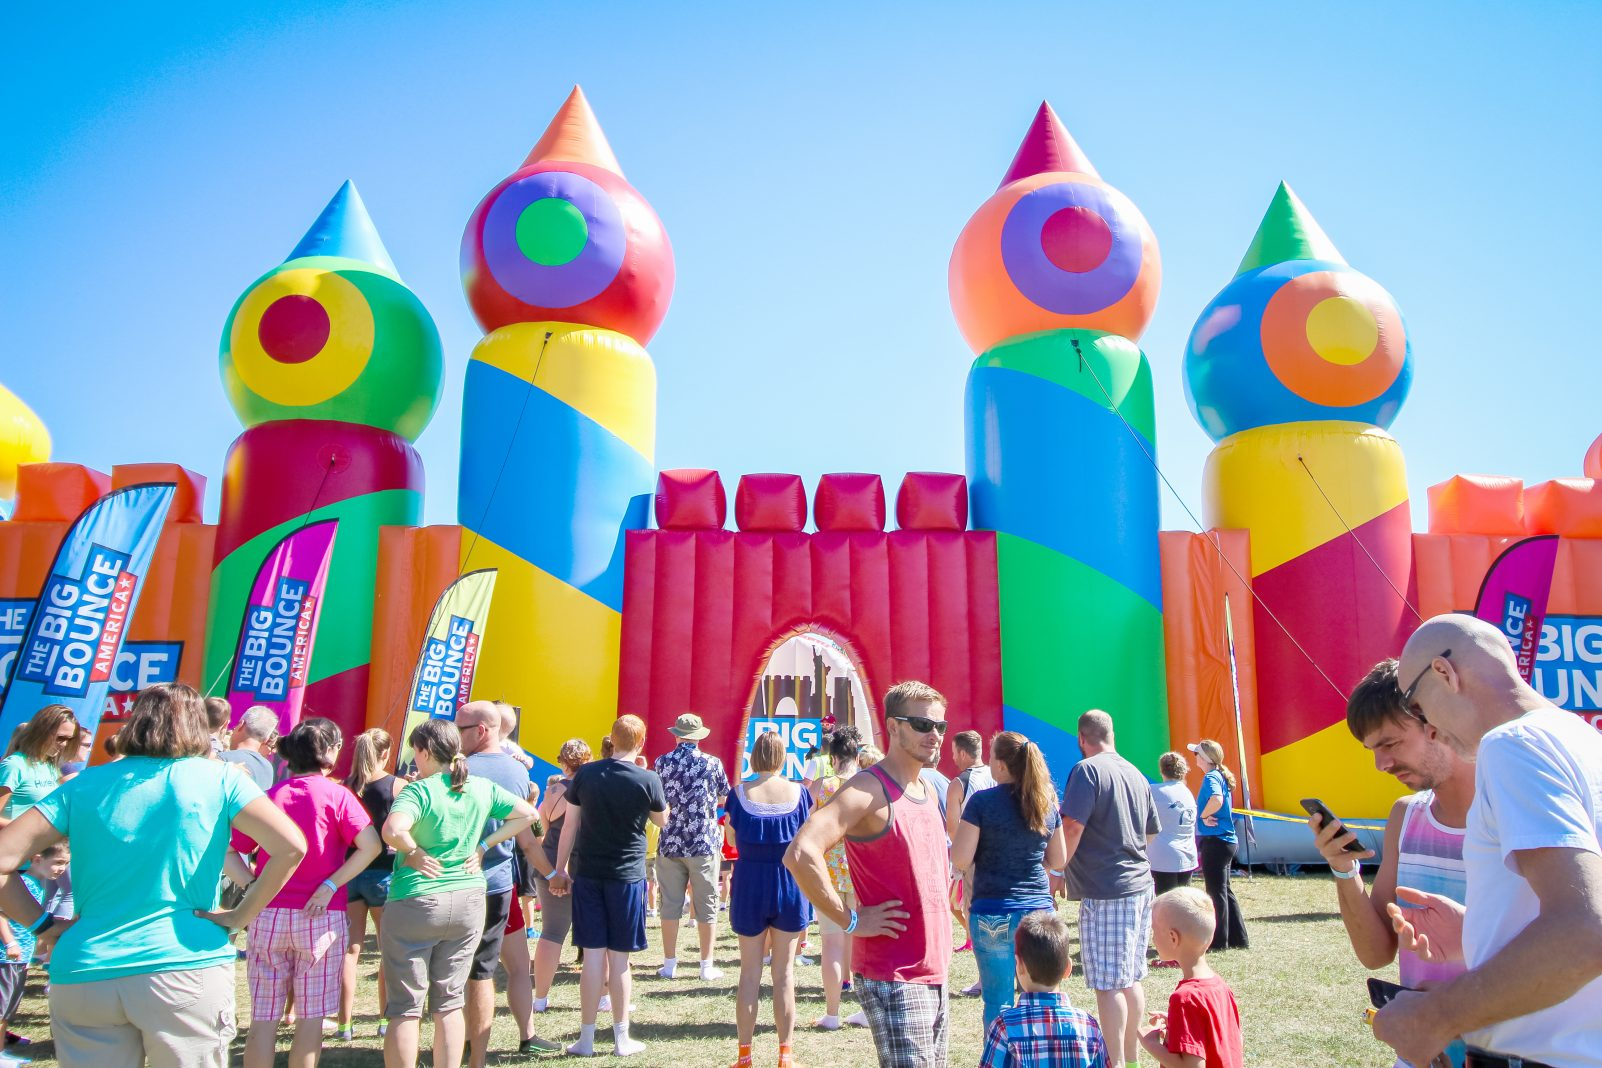 The World's Biggest Bounce House